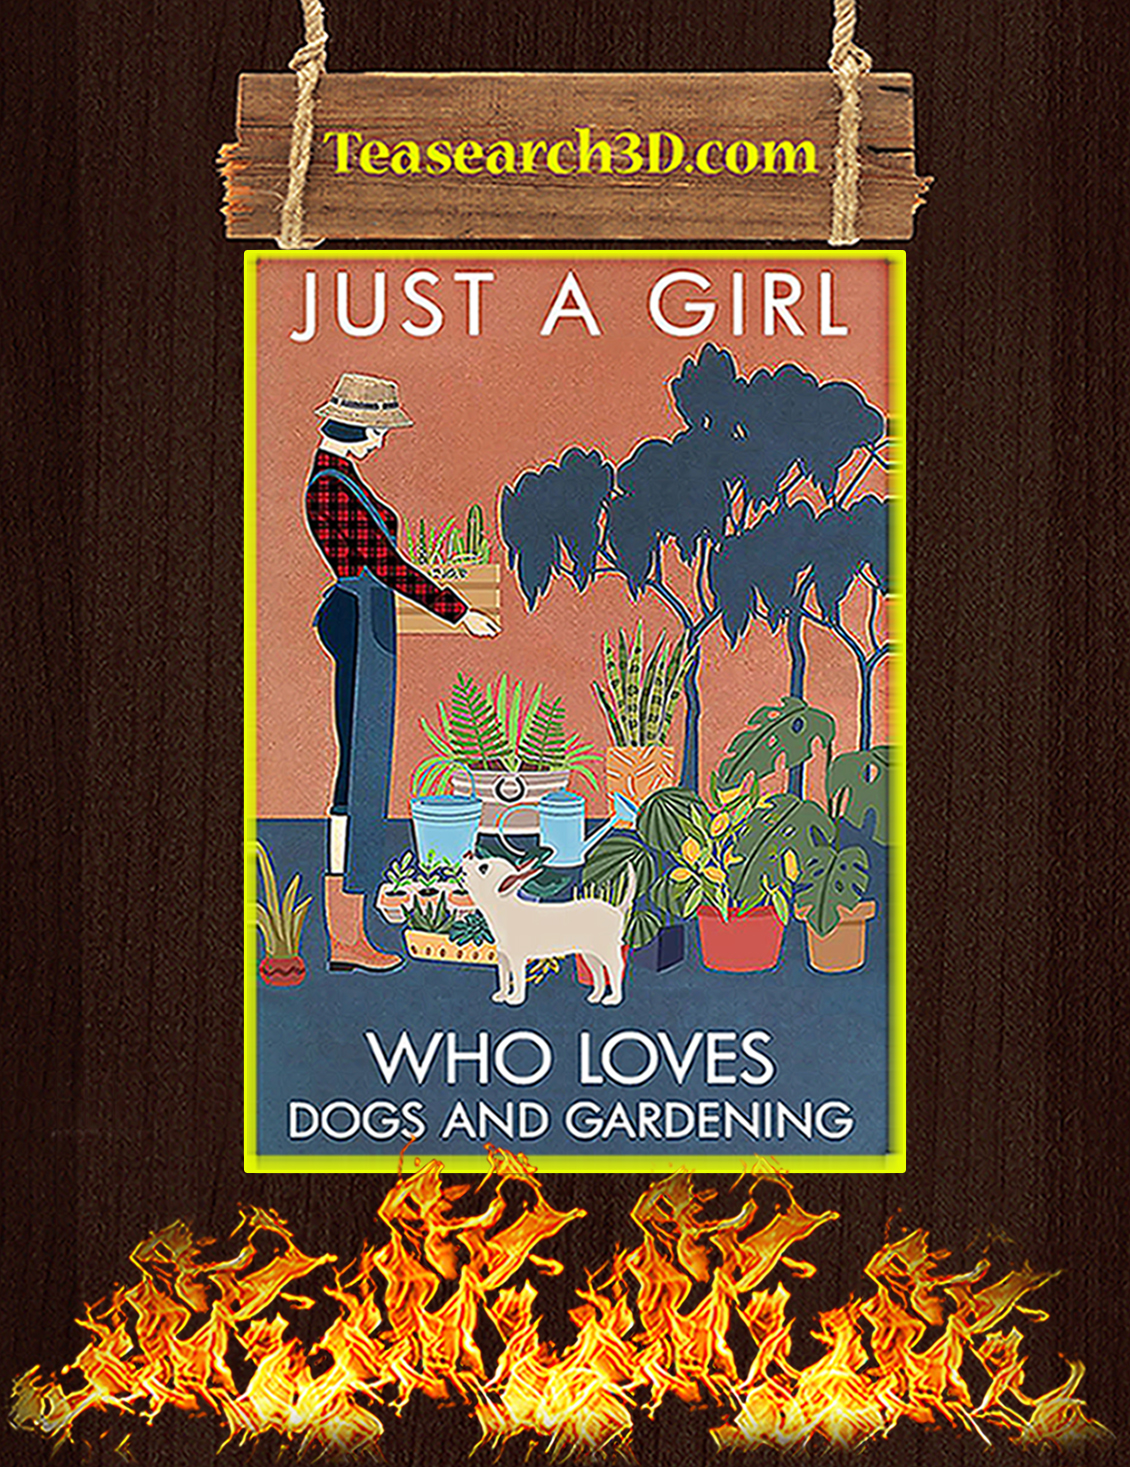 Just a girl who love dogs and gardening poster A3